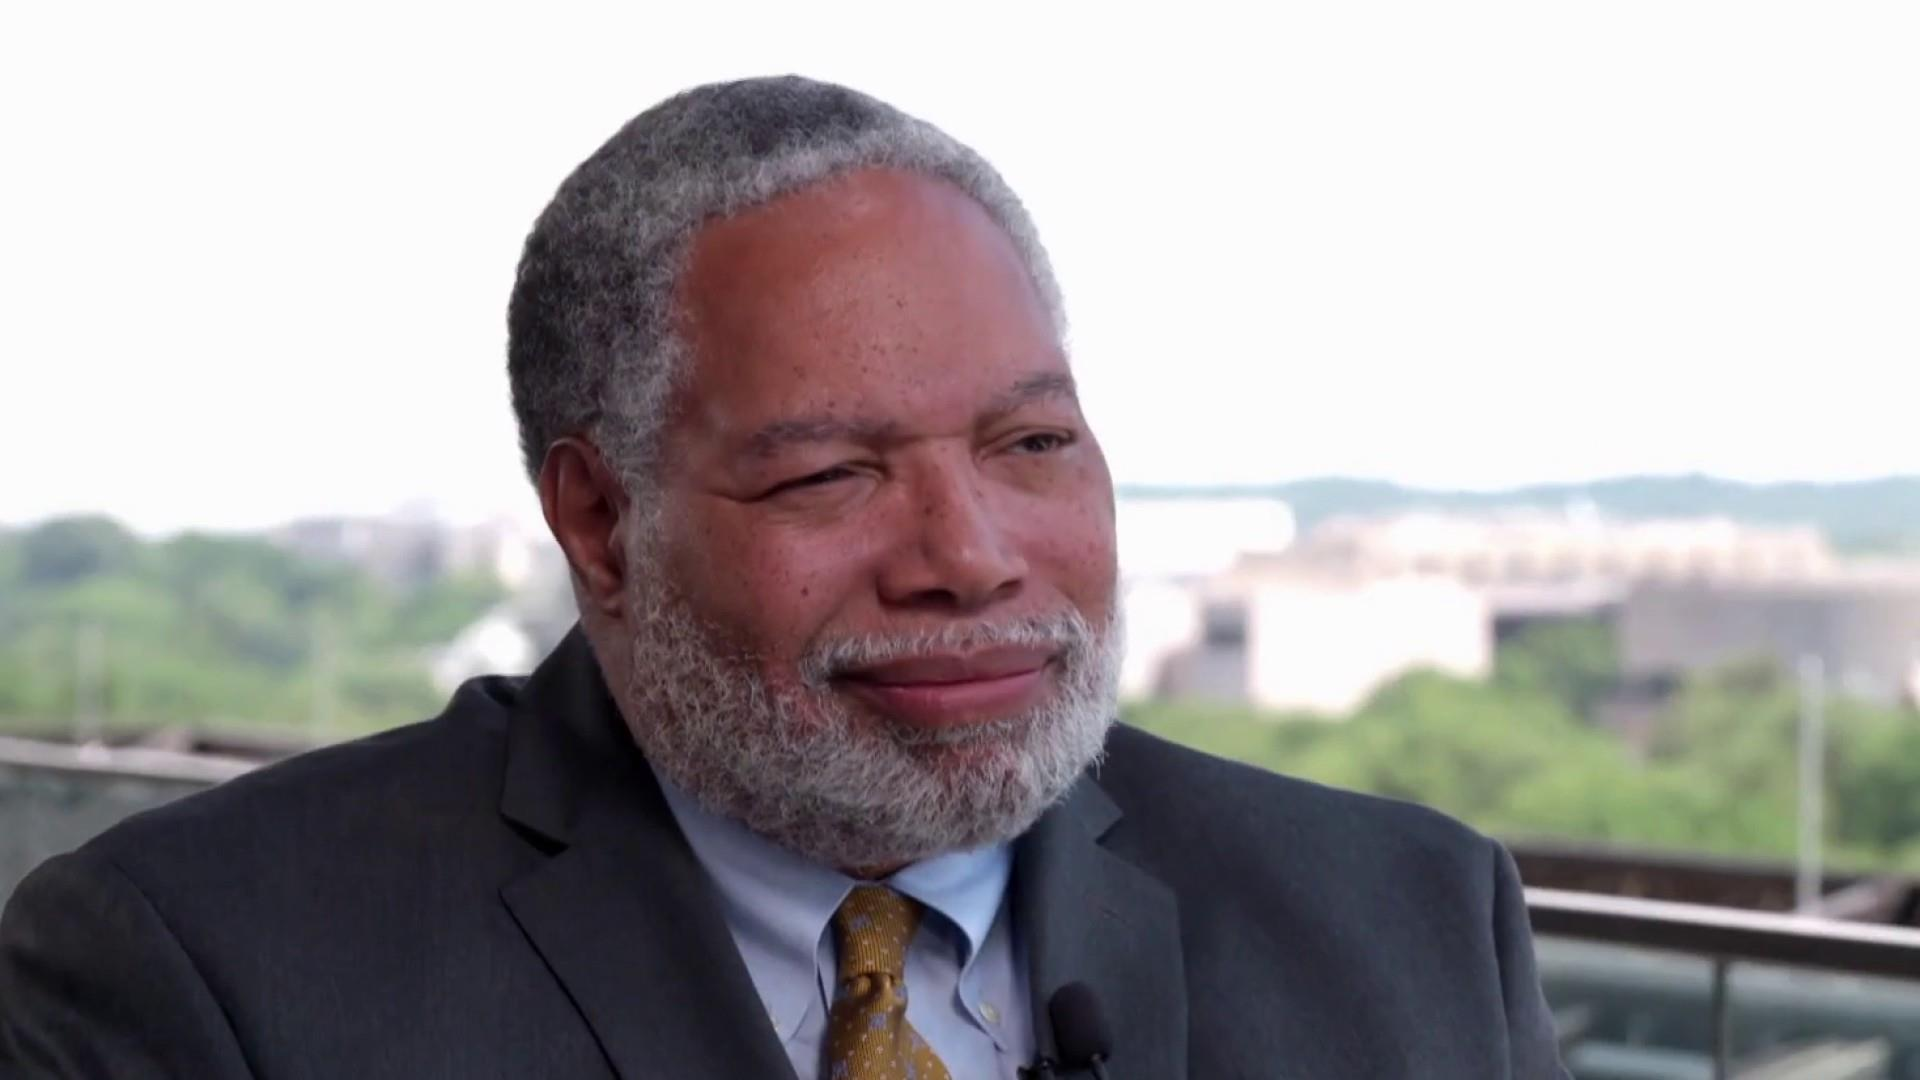 Lonnie Bunch set to make history with top Smithsonian job